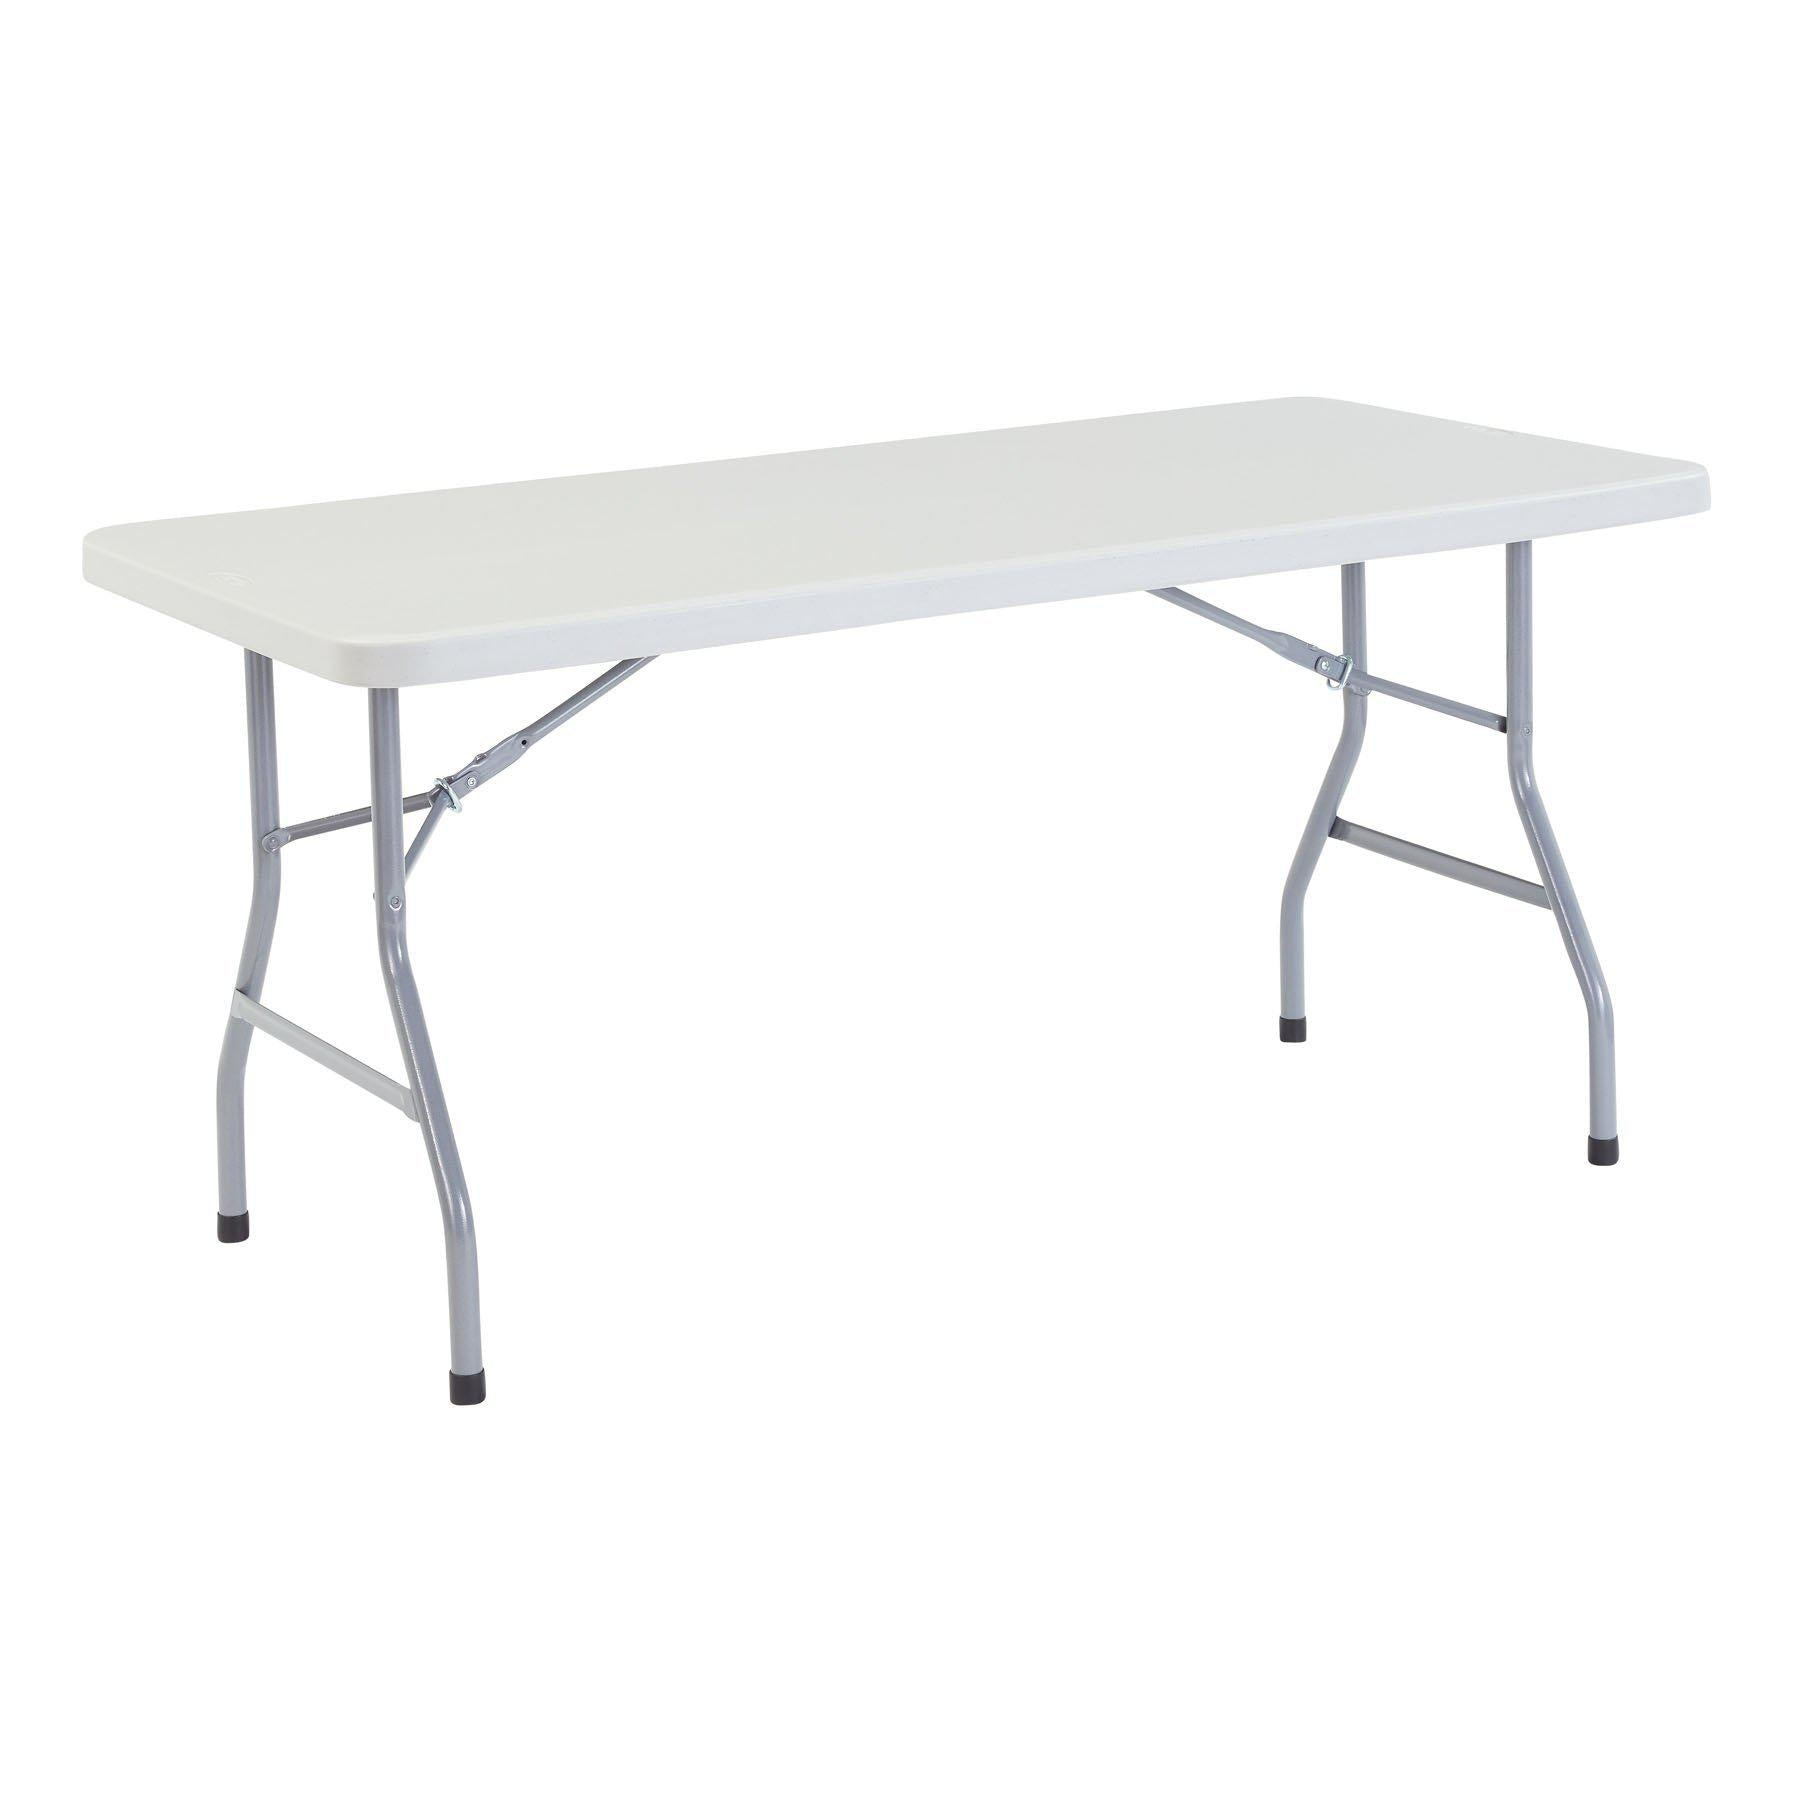 "Heavy Duty Folding Table, Speckled Gray-Tables-30"" x 60""-"